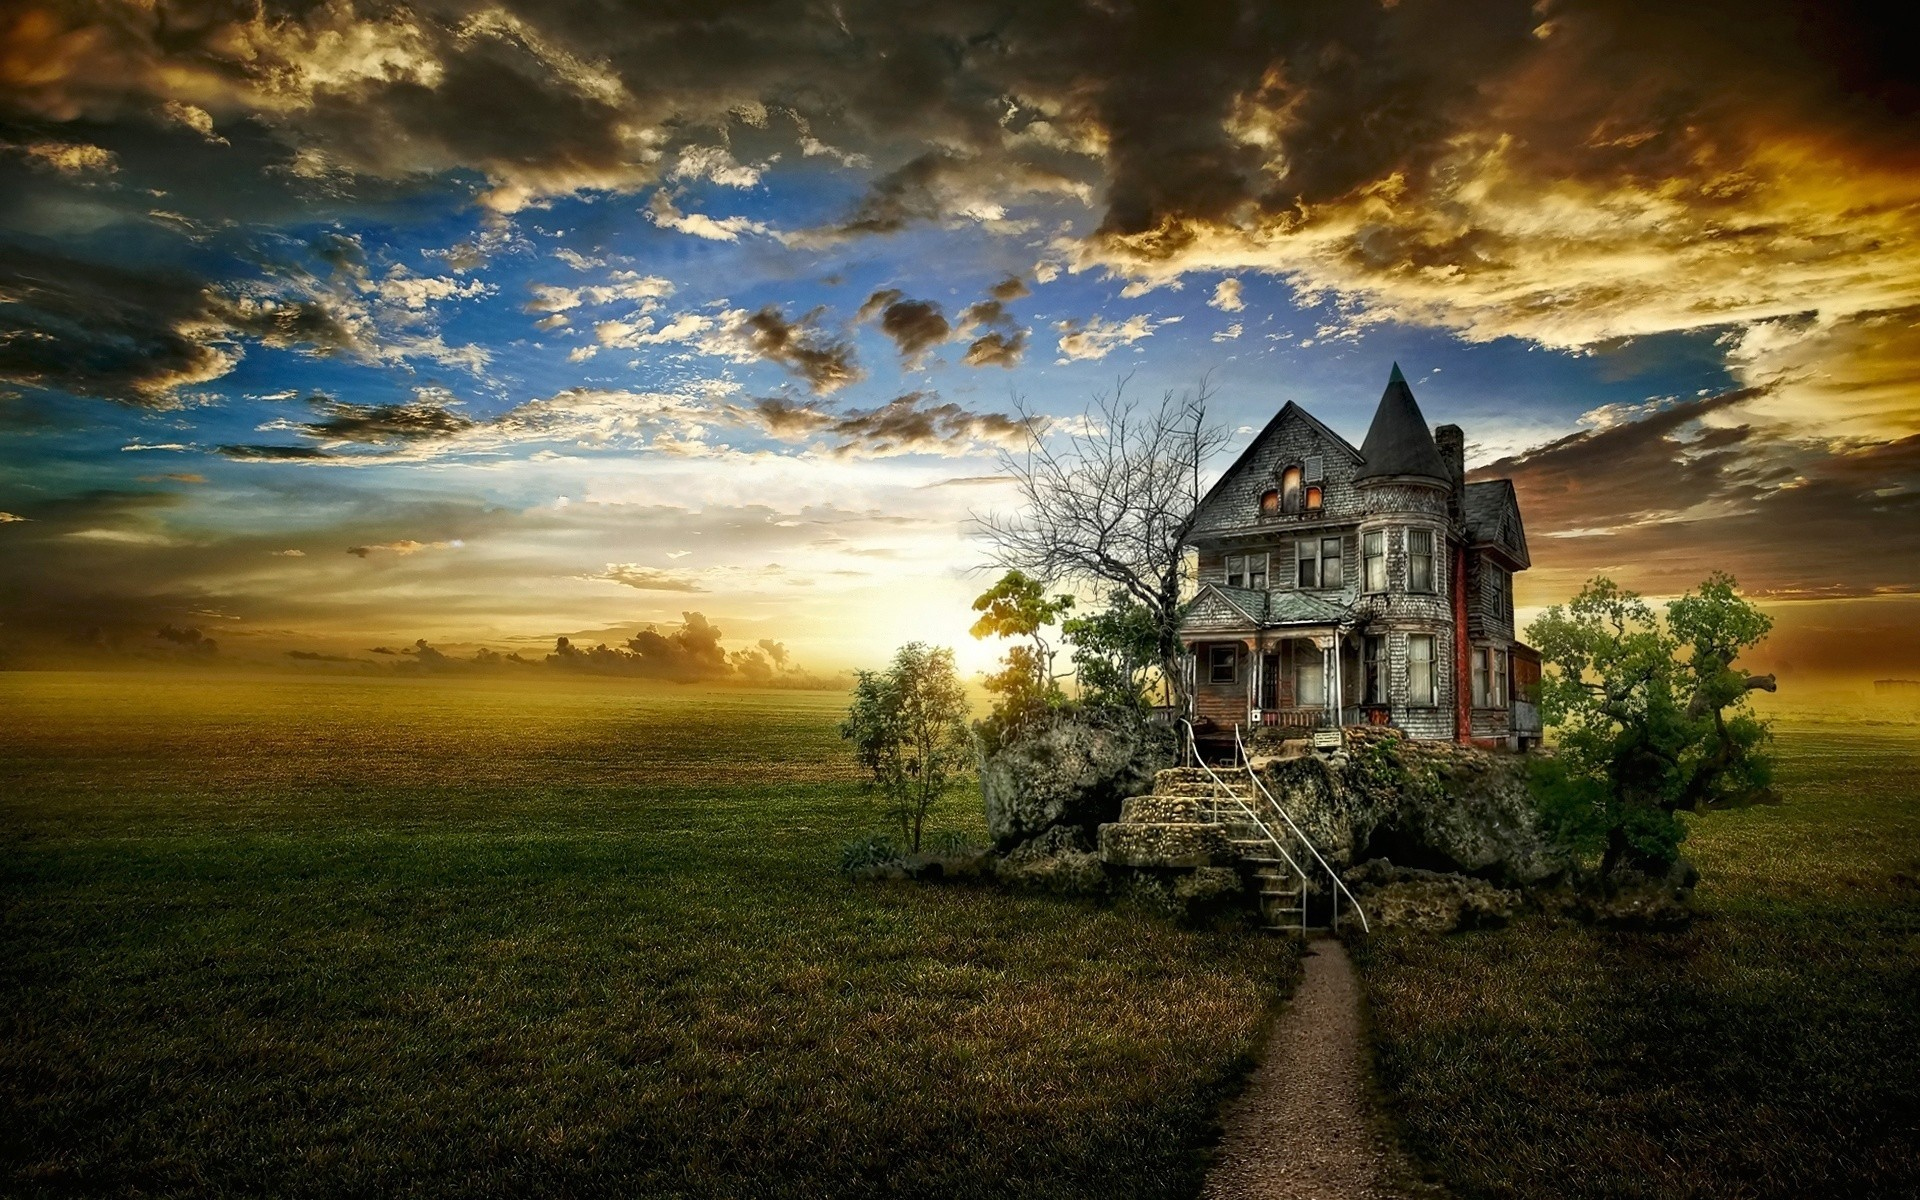 1920x1200 of an abandoned house HD Desktop Wallpaper | HD Desktop Wallpaper .